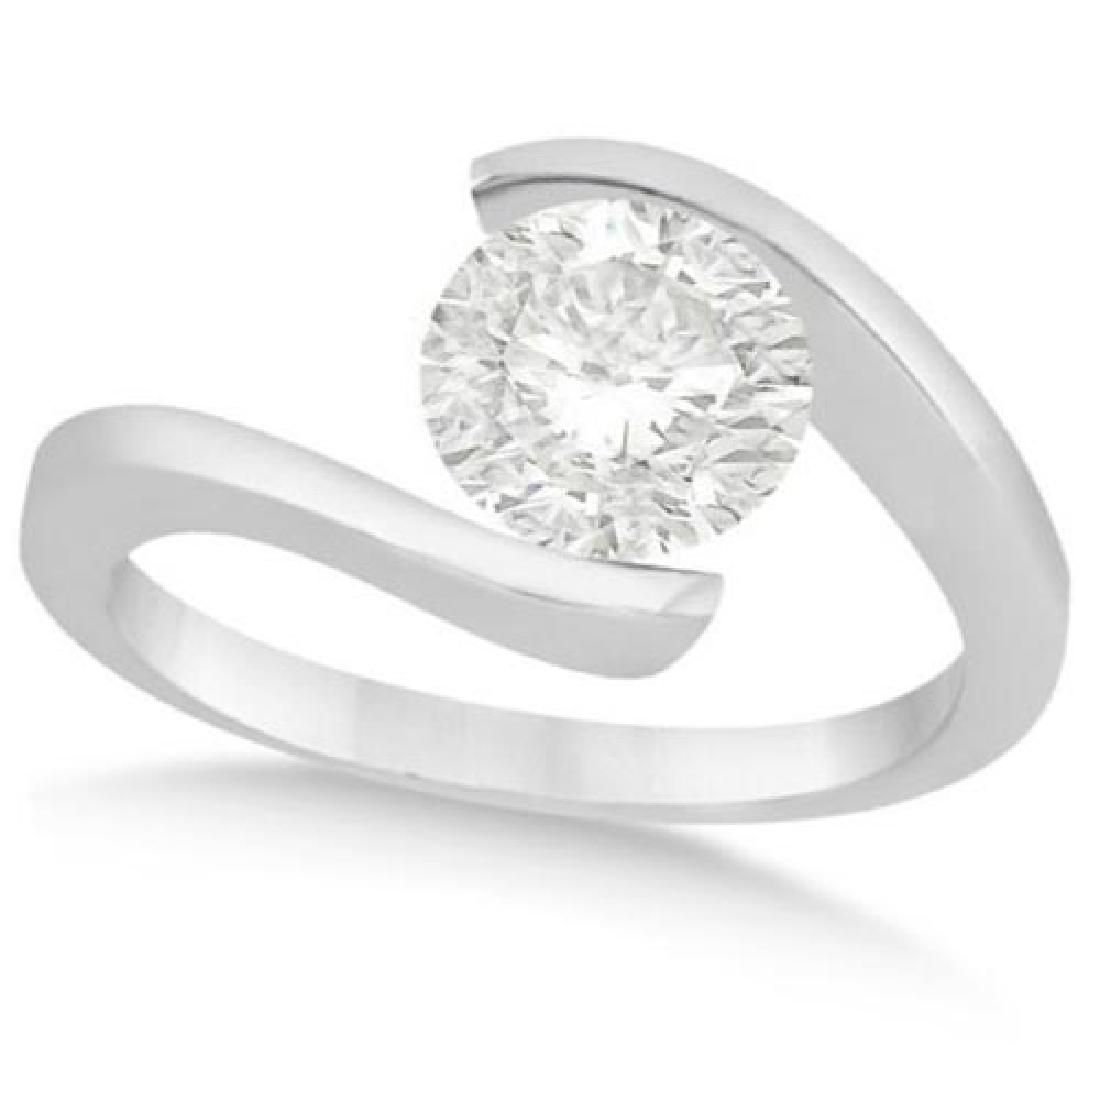 Tension Set Solitaire Diamond Engagement Ring in Platin